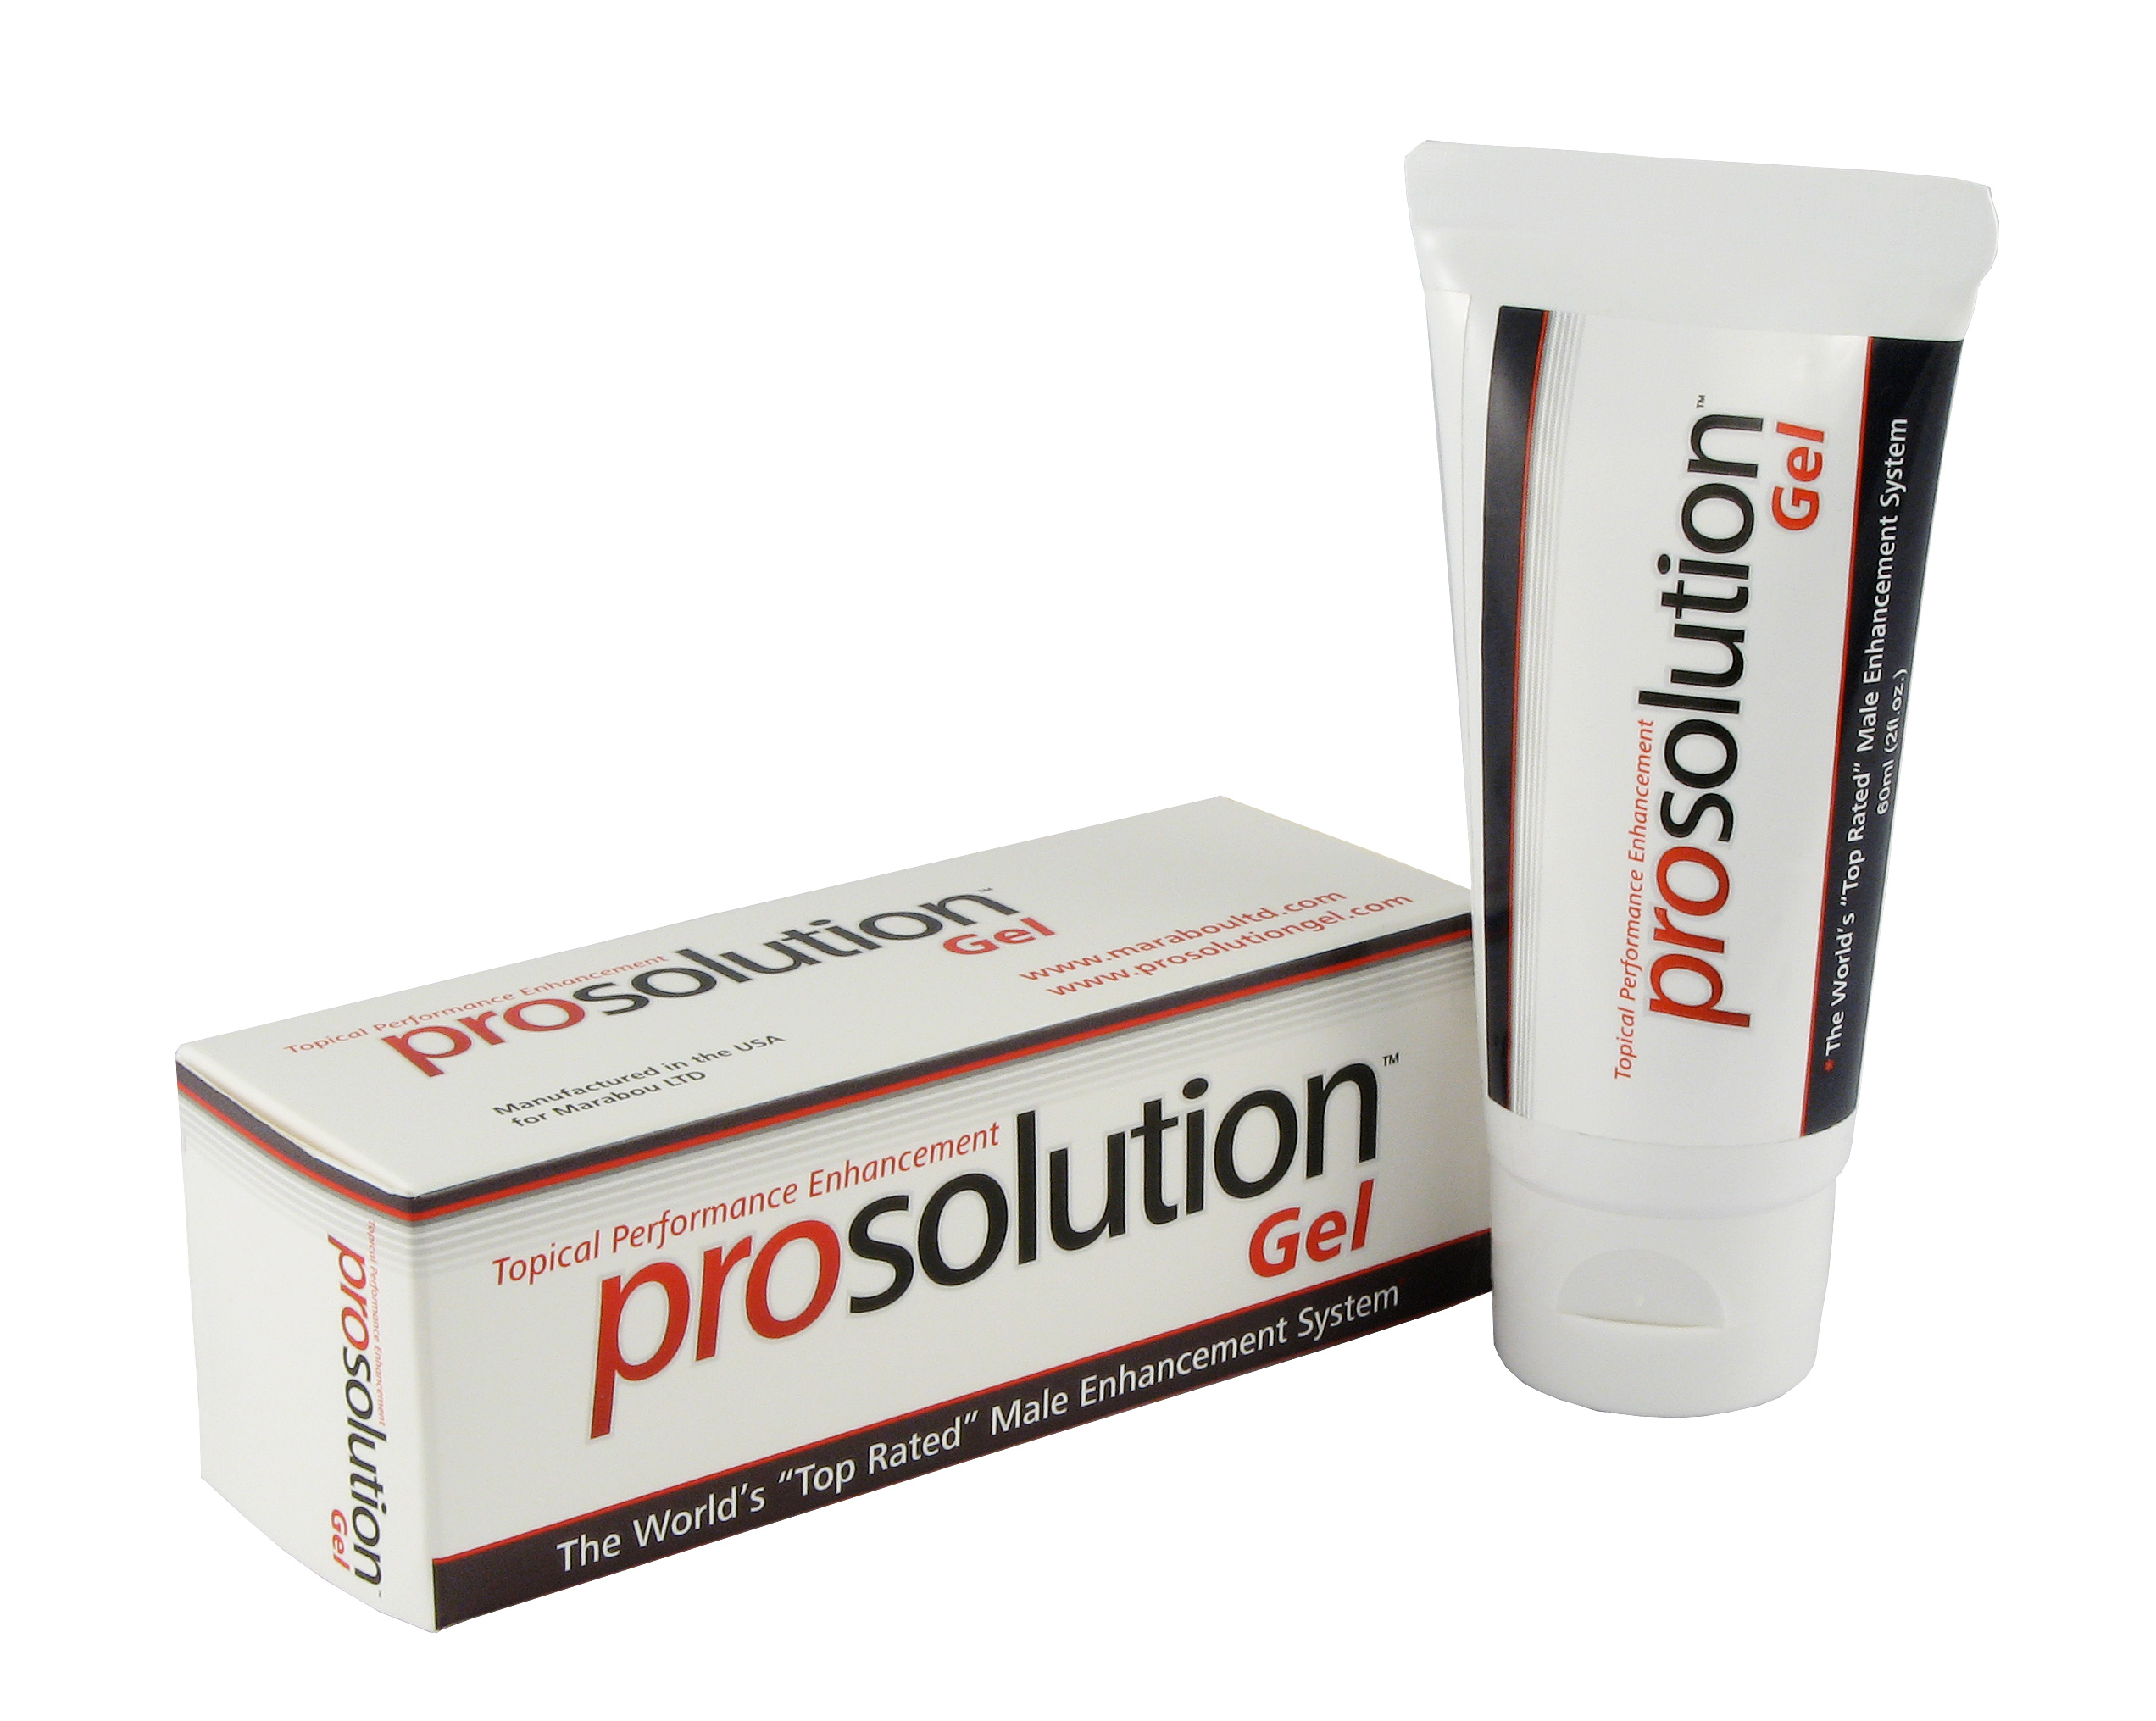 When ProSolution Gel is applied to the penis not only will you increase the size of an erection but also the sensitivity of the erection.